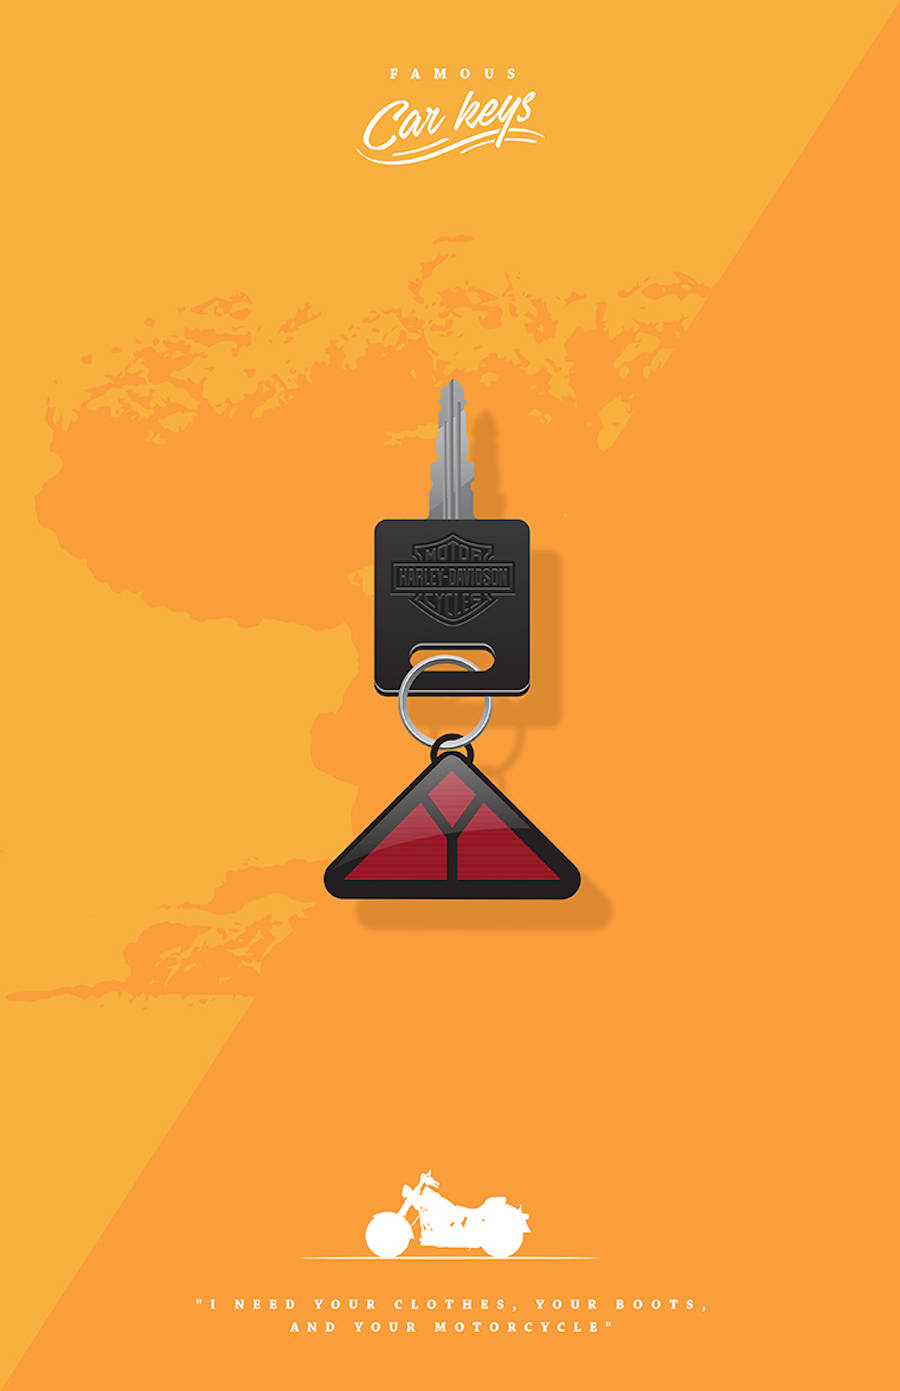 Famous Car Keys Related to Pop Culture Movies